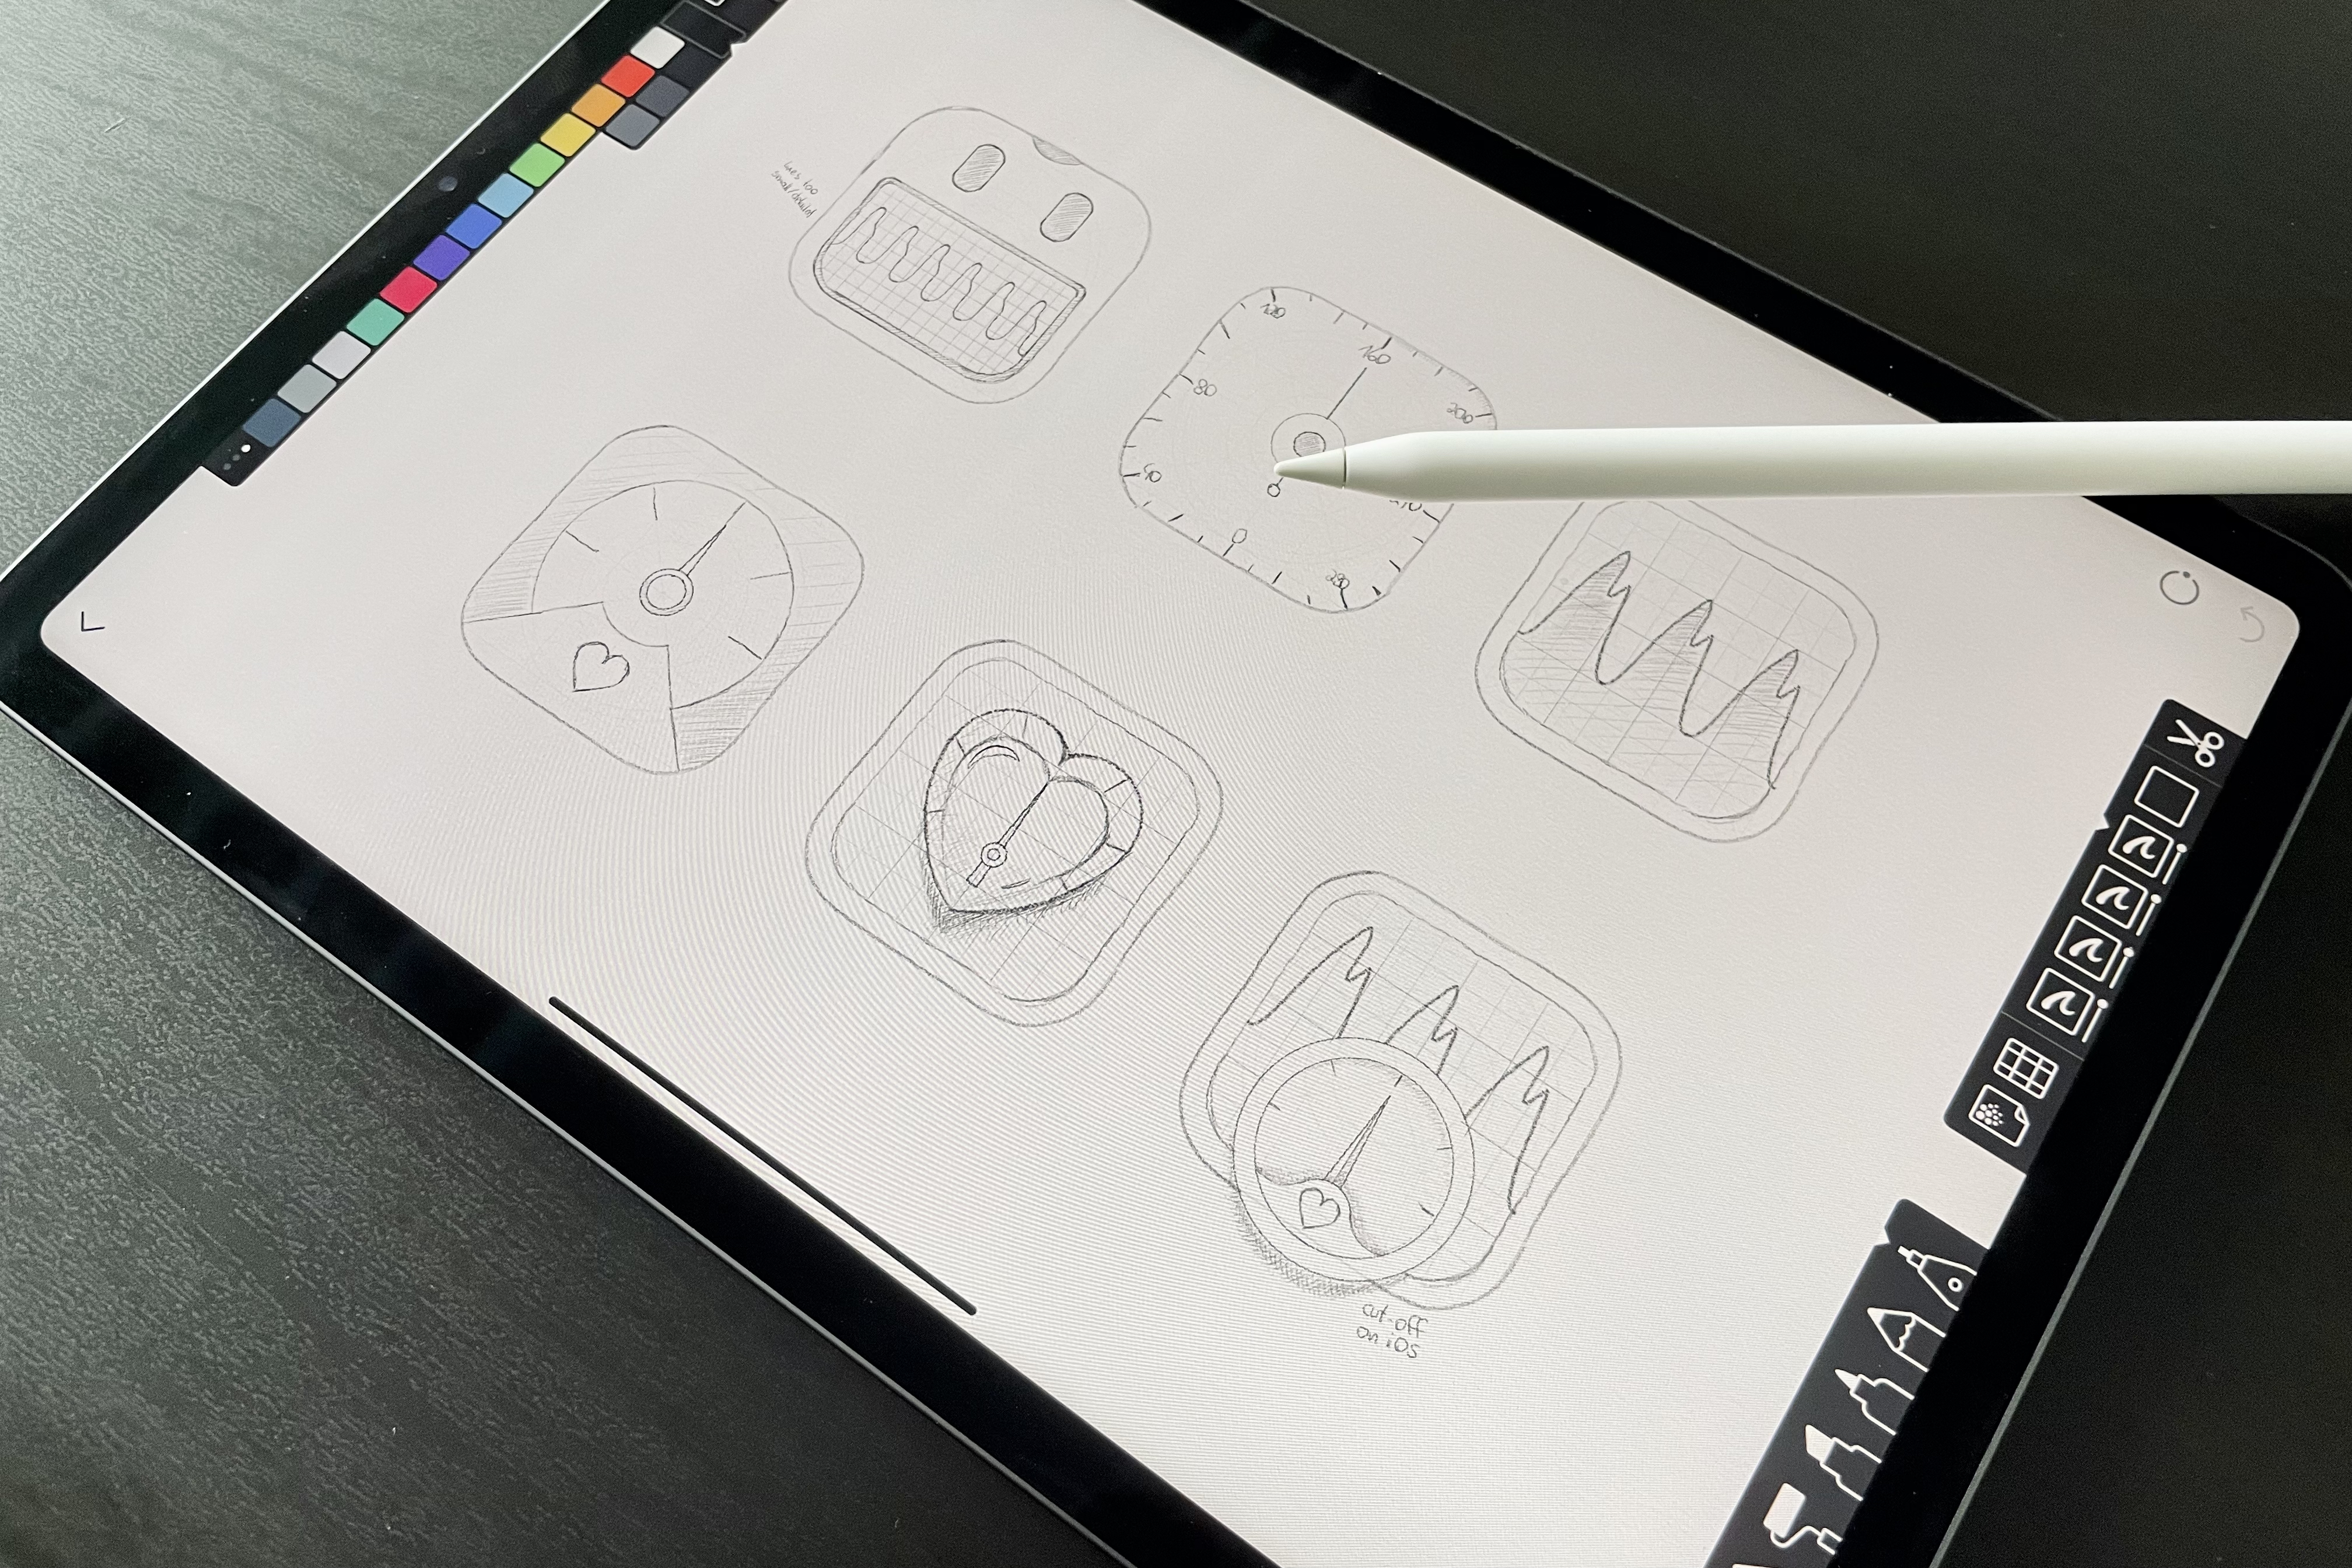 An iPad with sketches for icons drawn on Linea, also featuring an Apple Pen